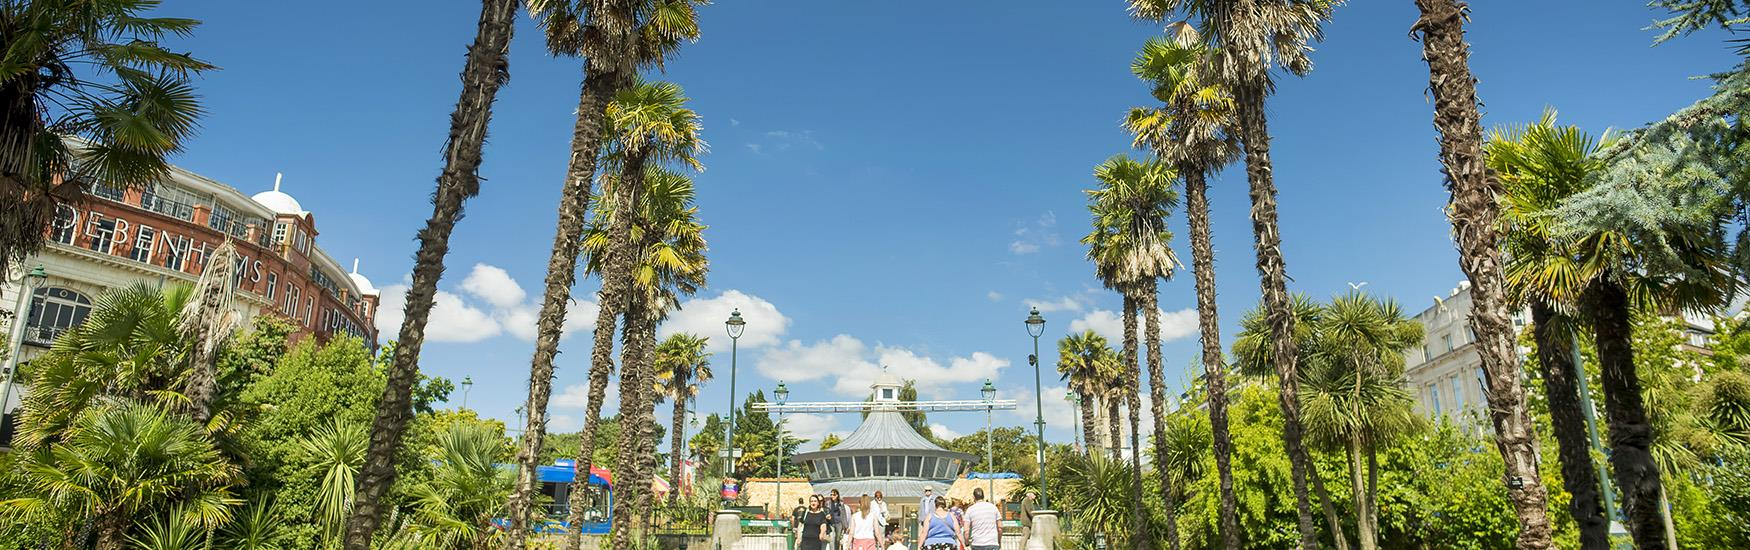 Visitors enjoying a stroll through the palm trees at Bournemouth's lower gardens in Spring time